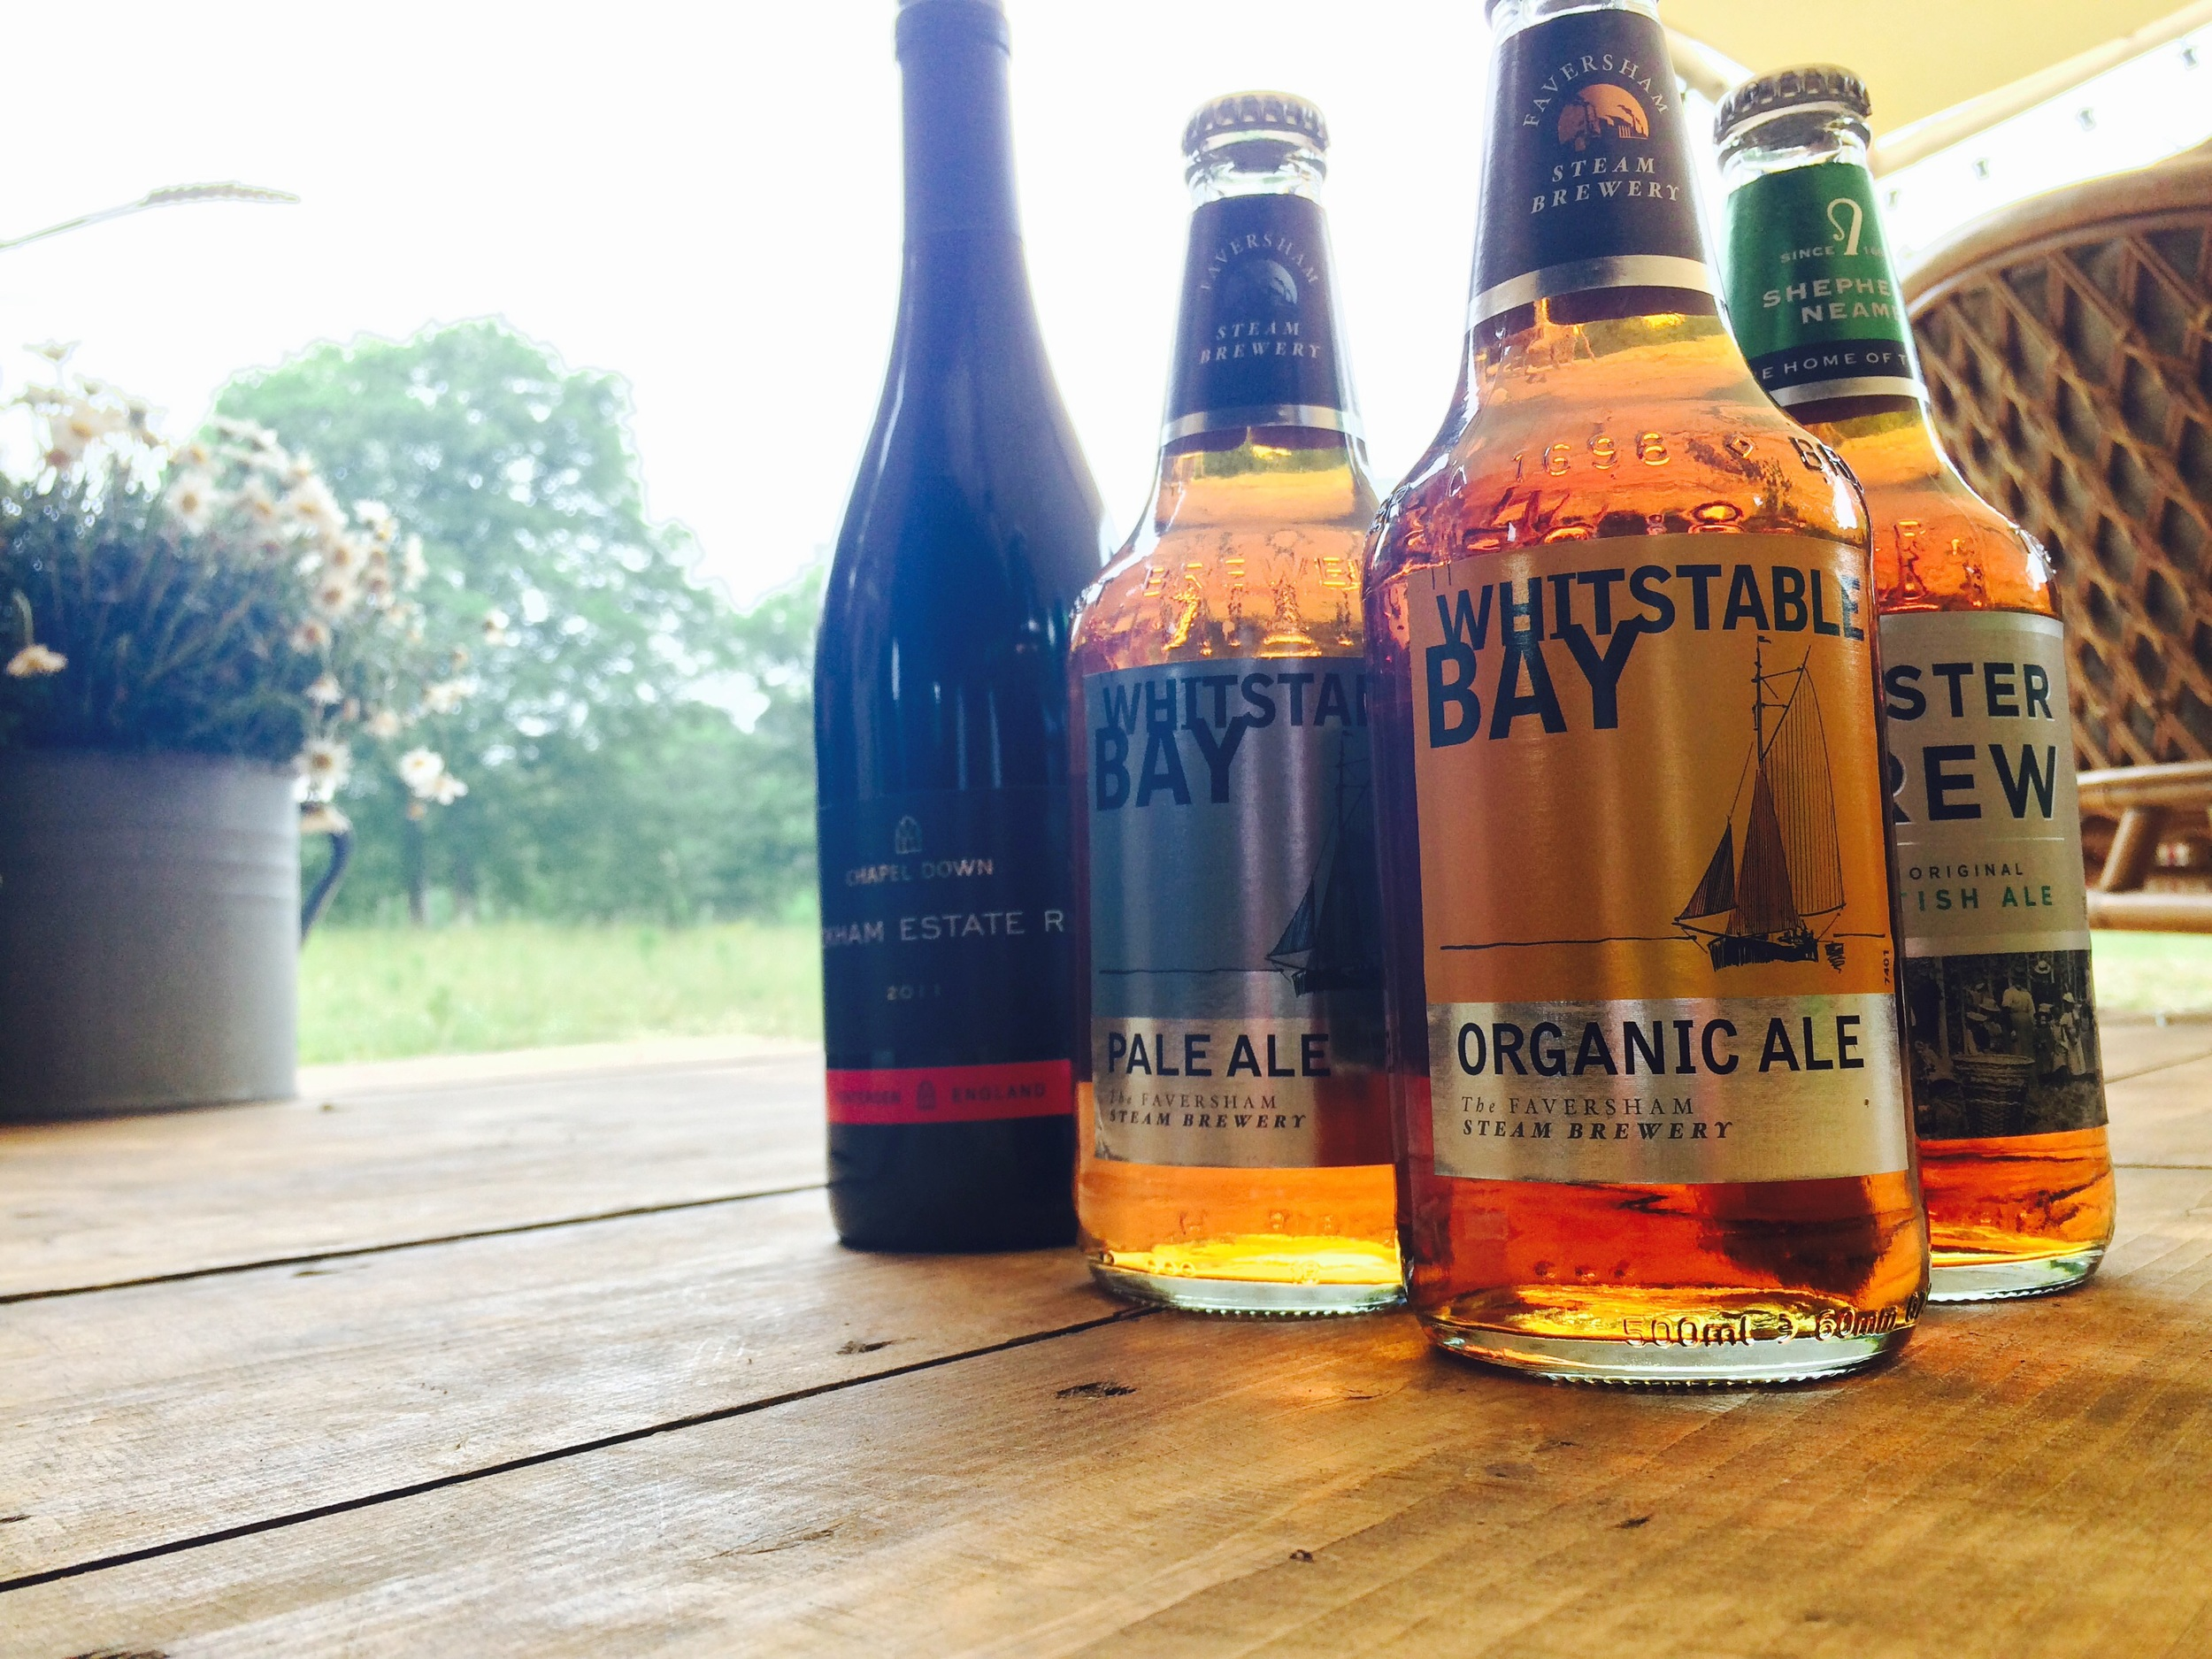 The Kent Mobile Bar Company supporting local producers of beer and wine.